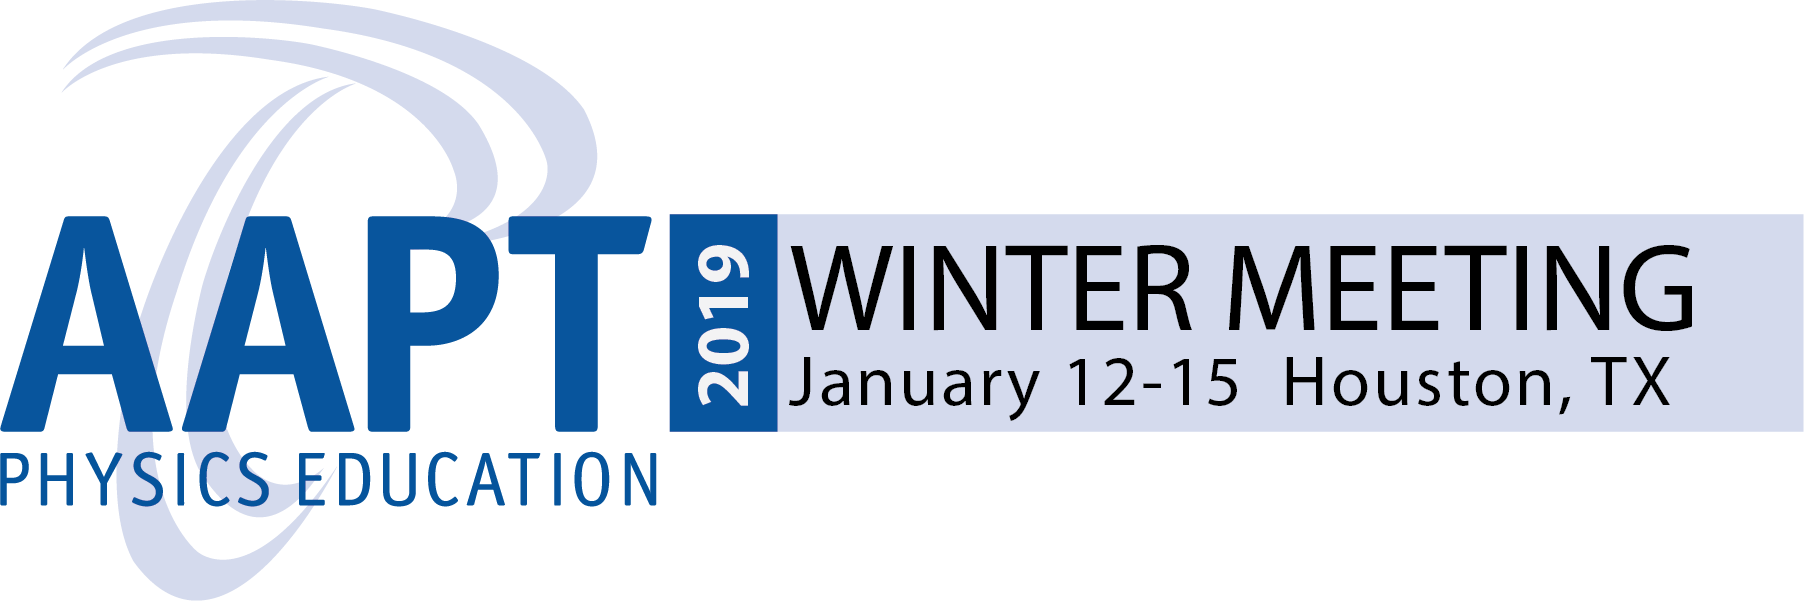 2019 Winter Meeting Abstracts Wm2019 Houston Simple Solar Circuits Evil Mad Scientist Laboratories Aapt In